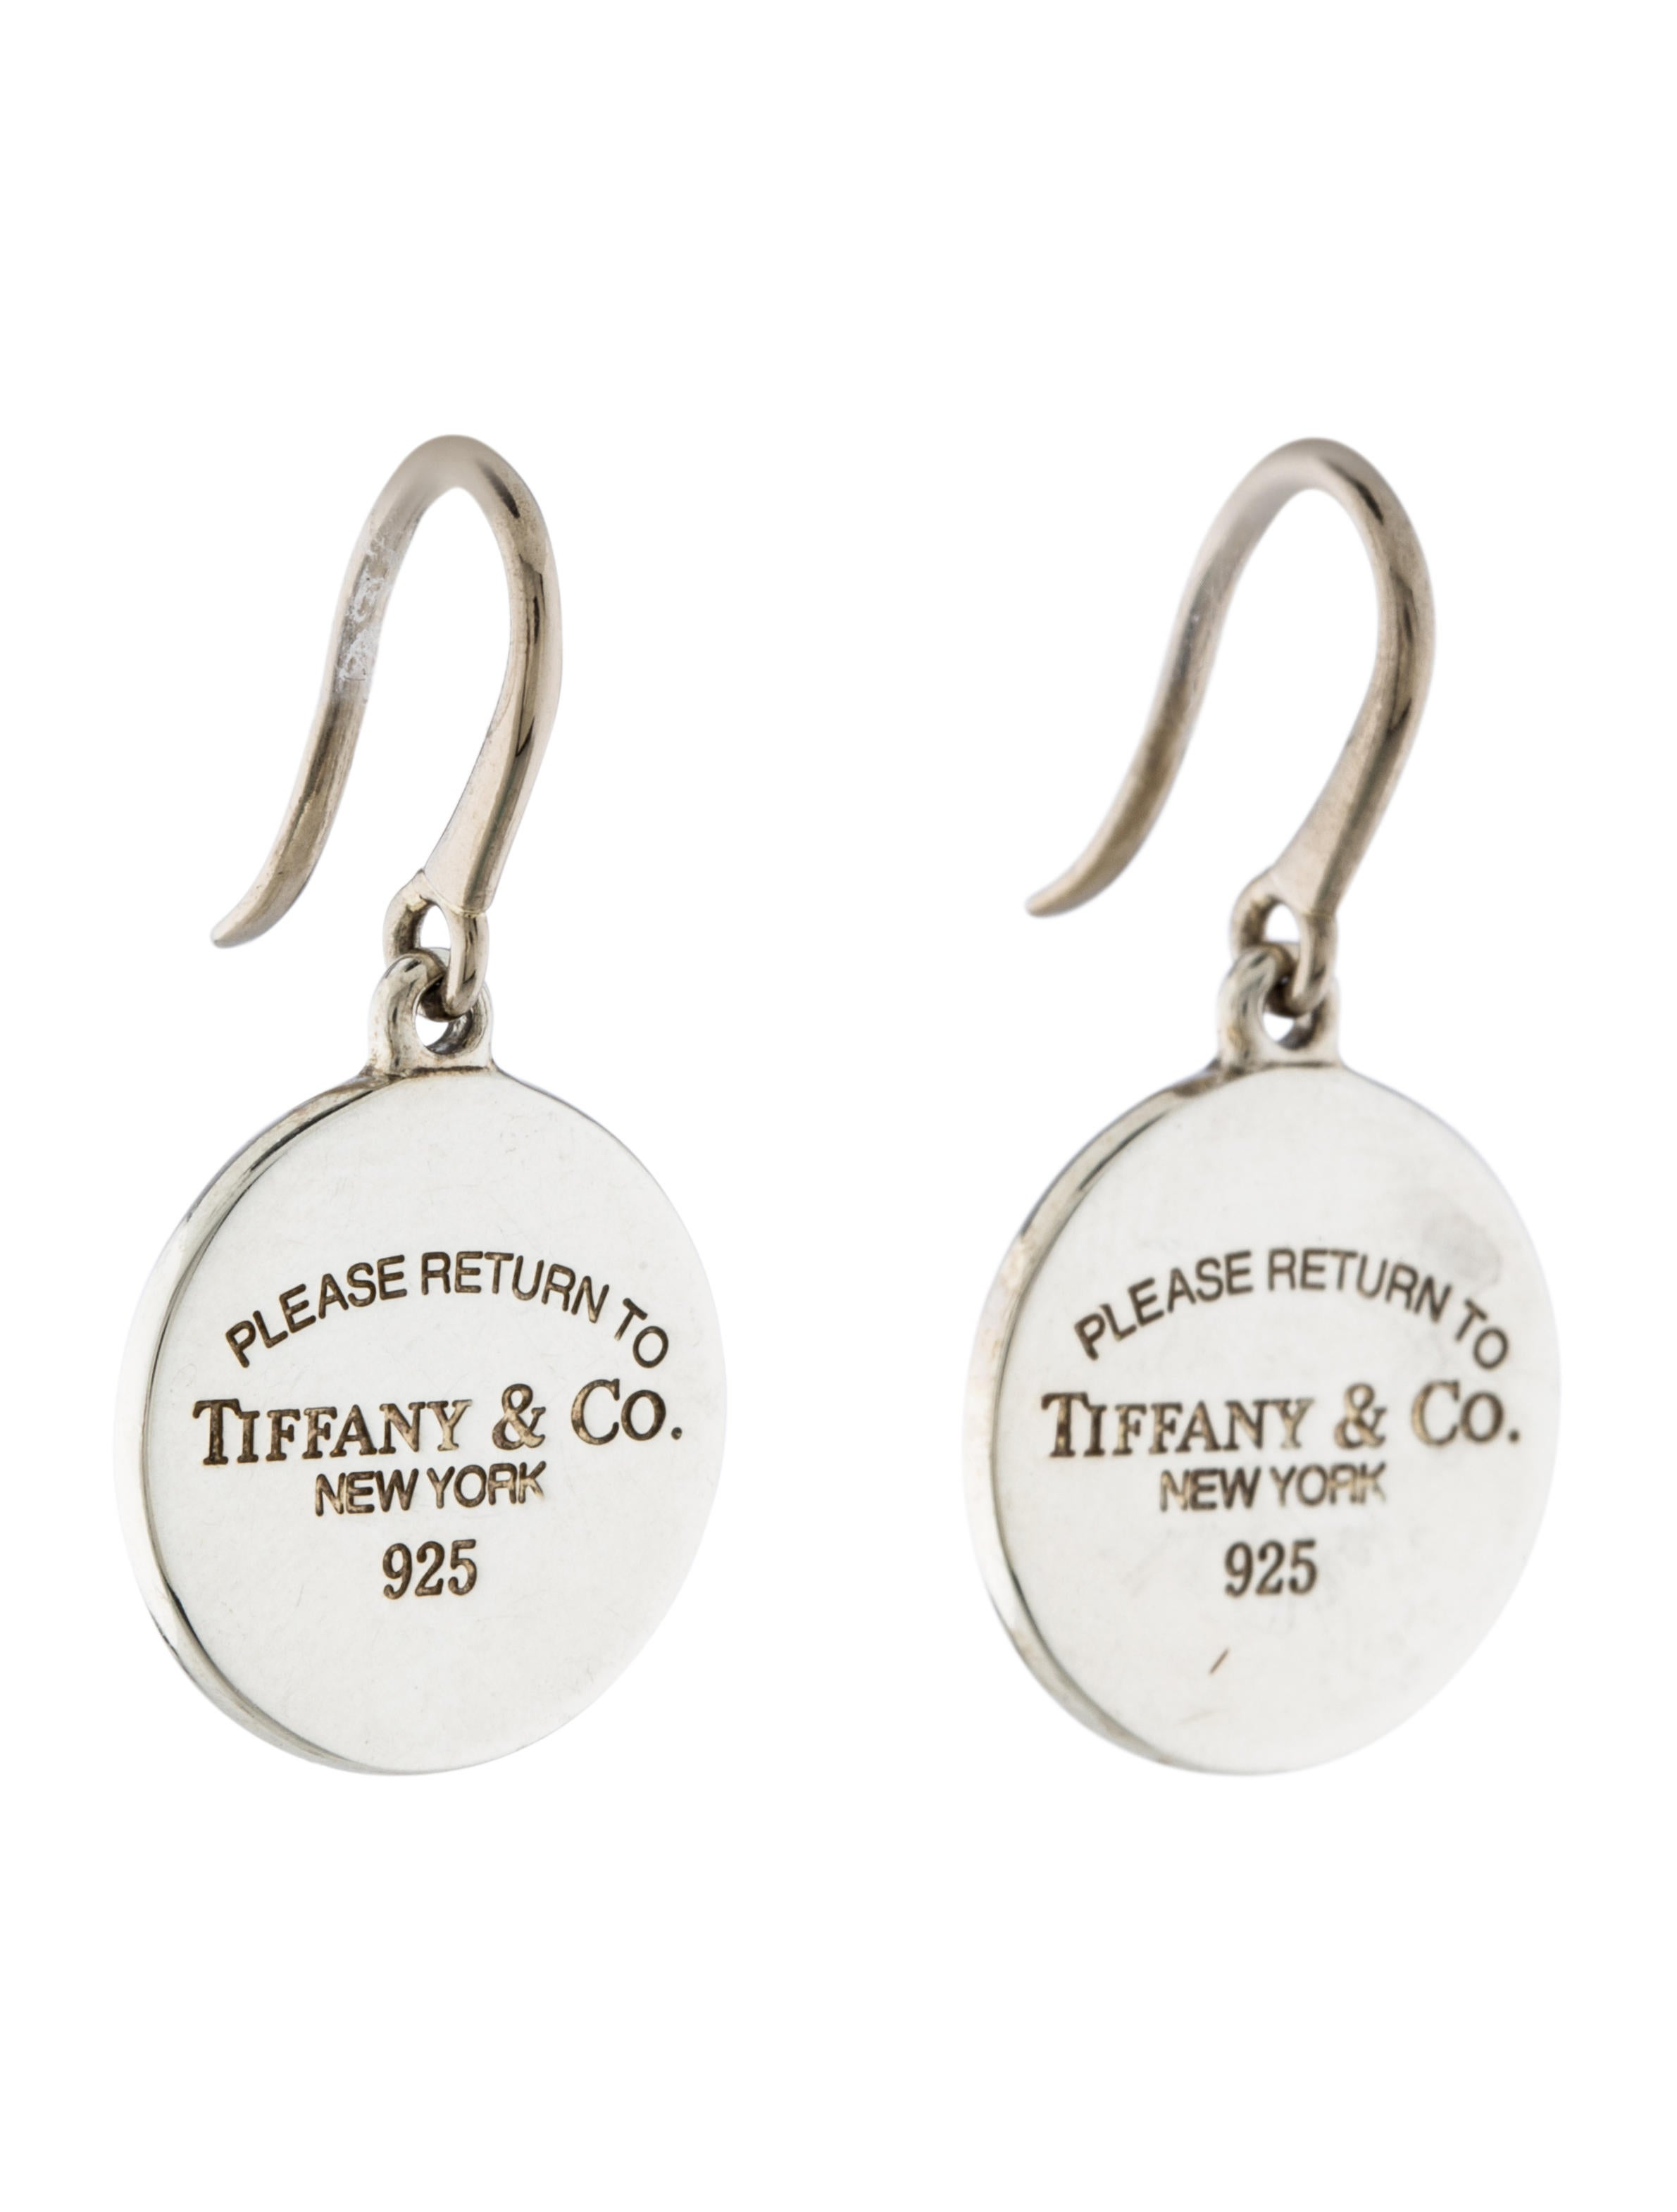 French Pillows Home Decor Tiffany Amp Co Round Tag Drop Earrings Earrings